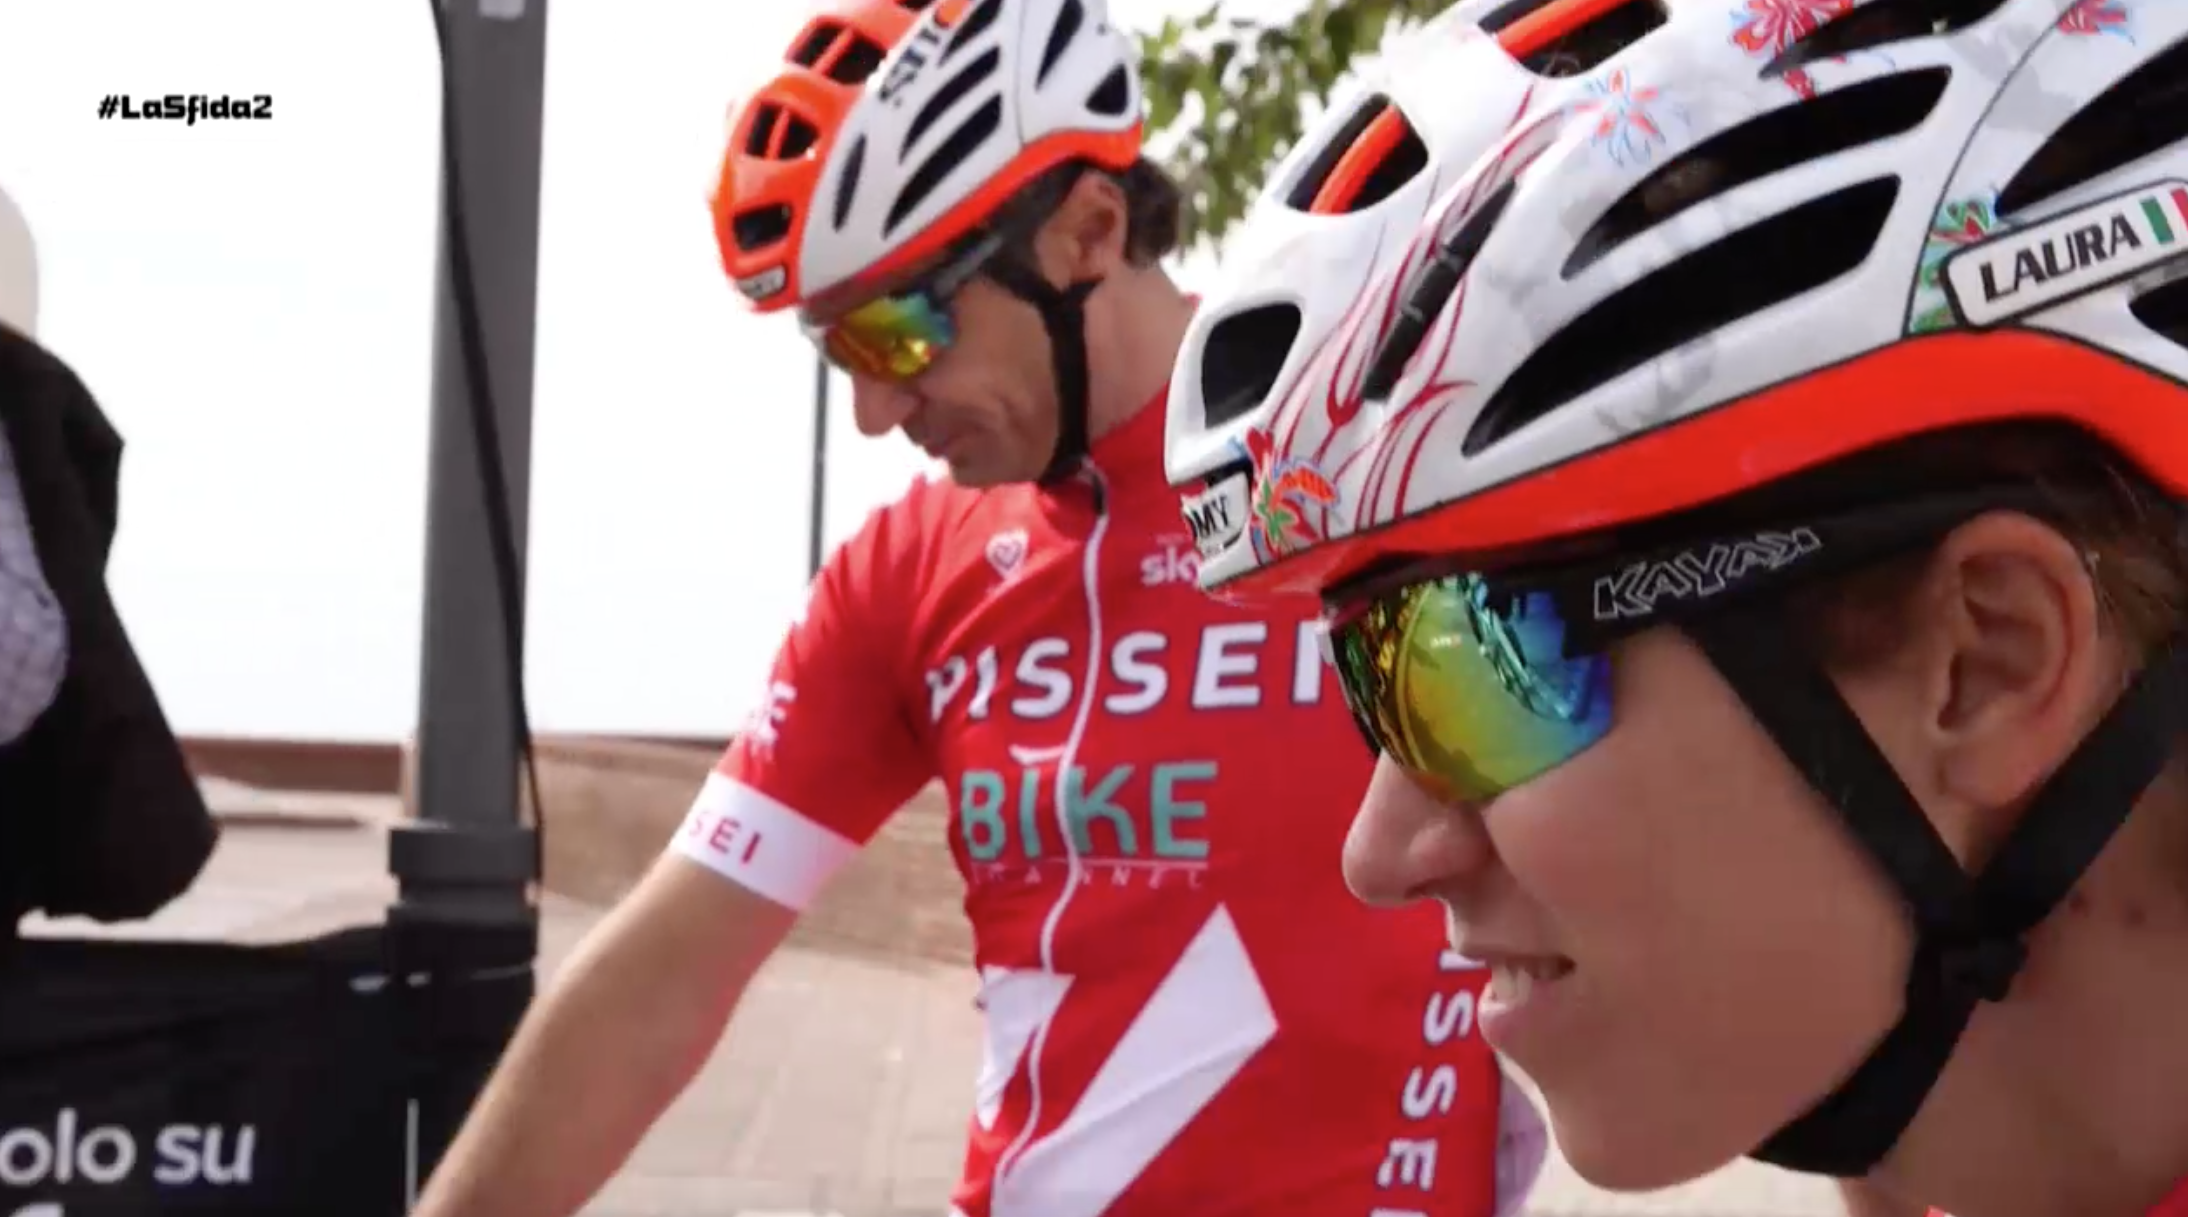 Gist cycling glasses protagonists of La Sfida, the cycling reality show on Bike Channel